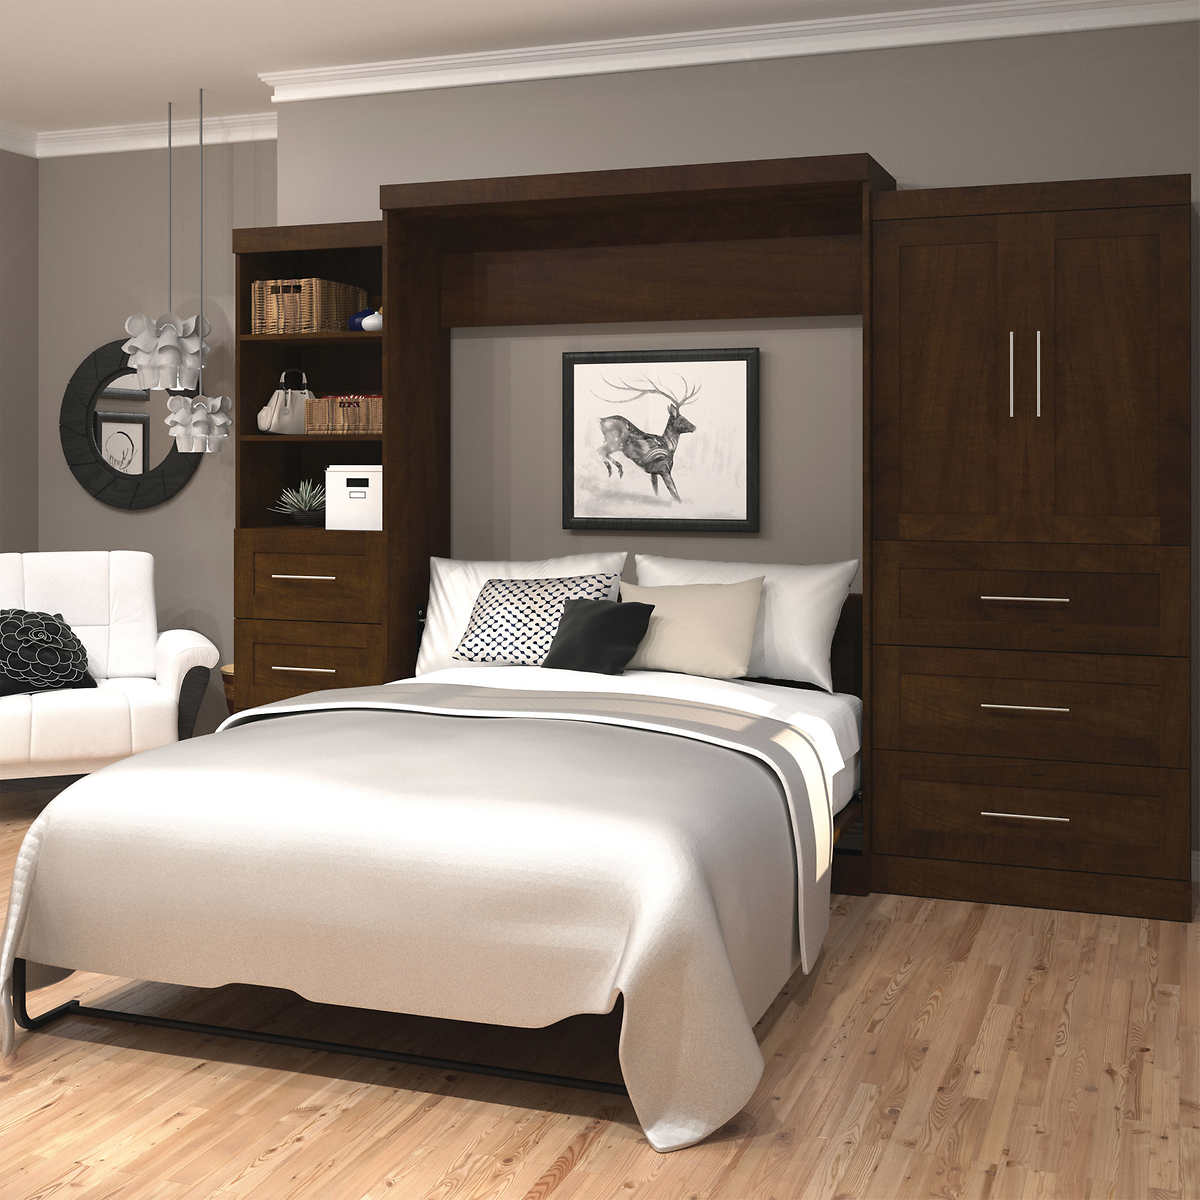 Likeable Wall Unit Bedroom Sets Of